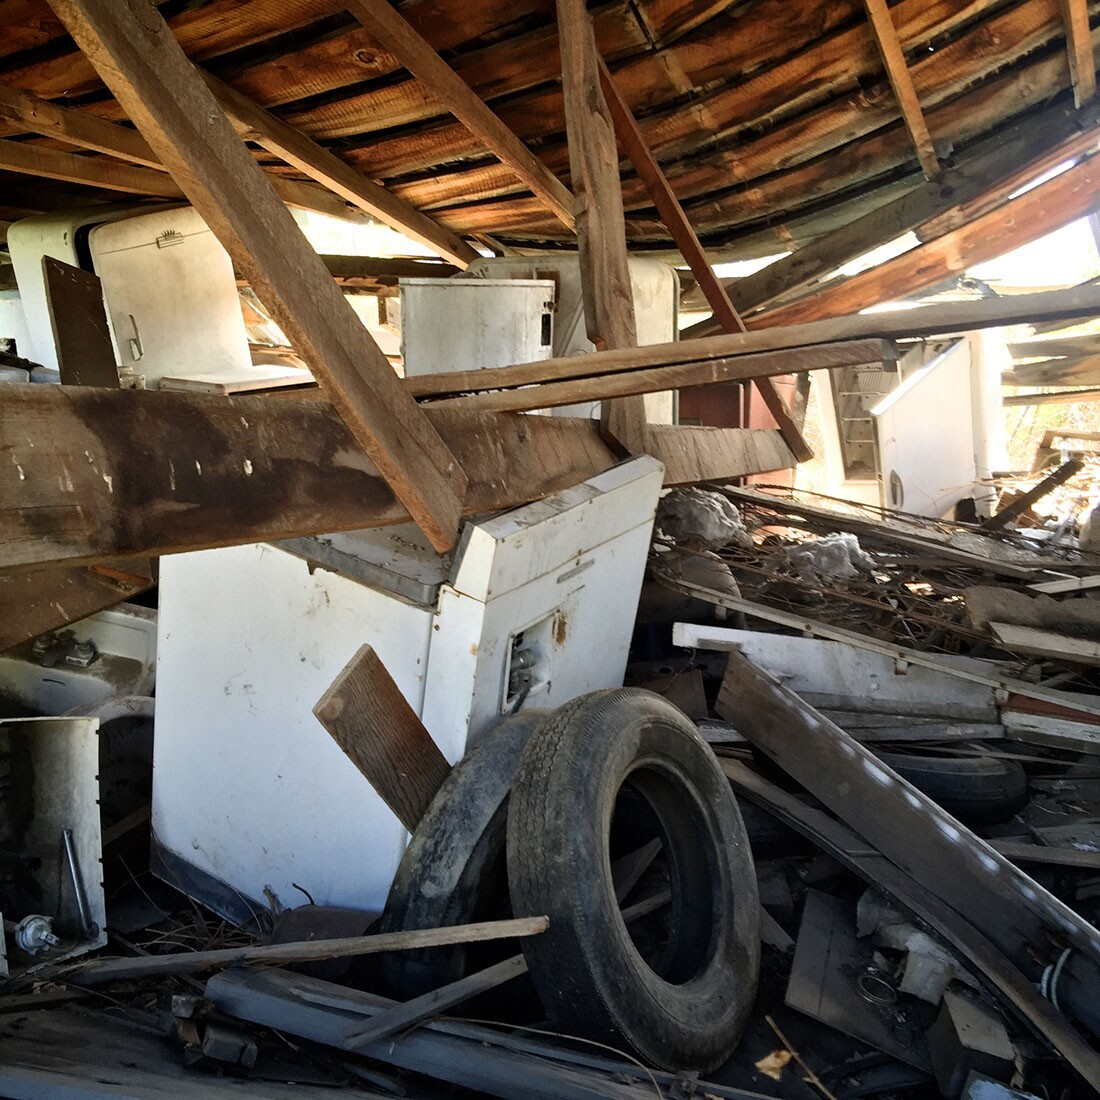 Collapsed Building withHoarded Appliances and Tires - Bishop, CA -2016   Osceola Refetoff